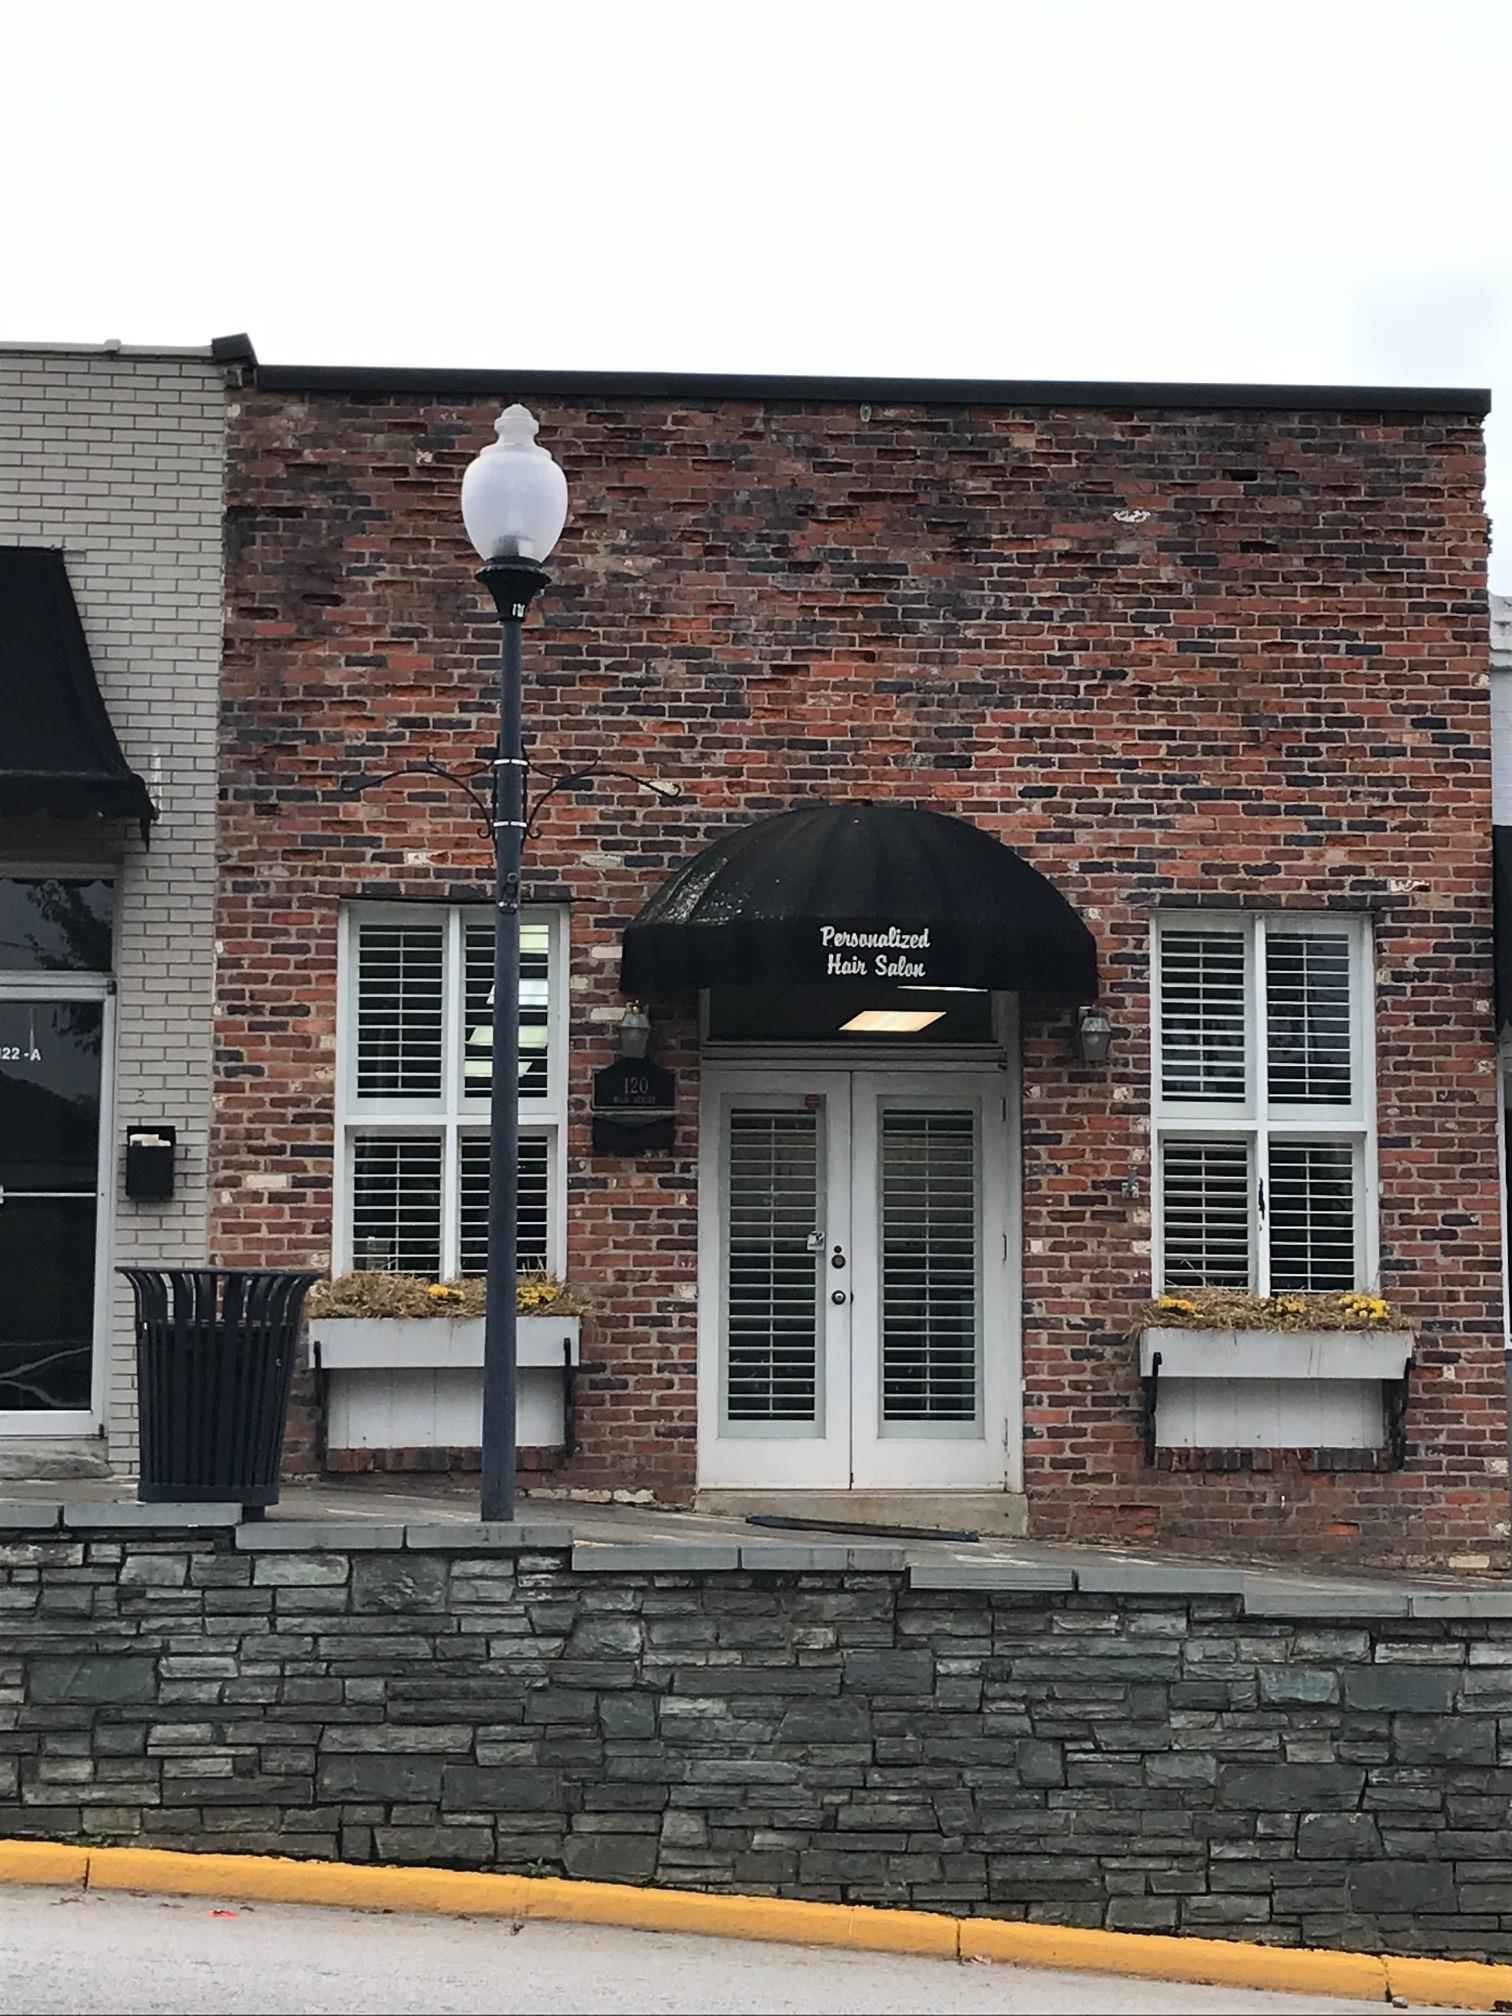 120 Main Street in 2017 - Personalized Hair Salon